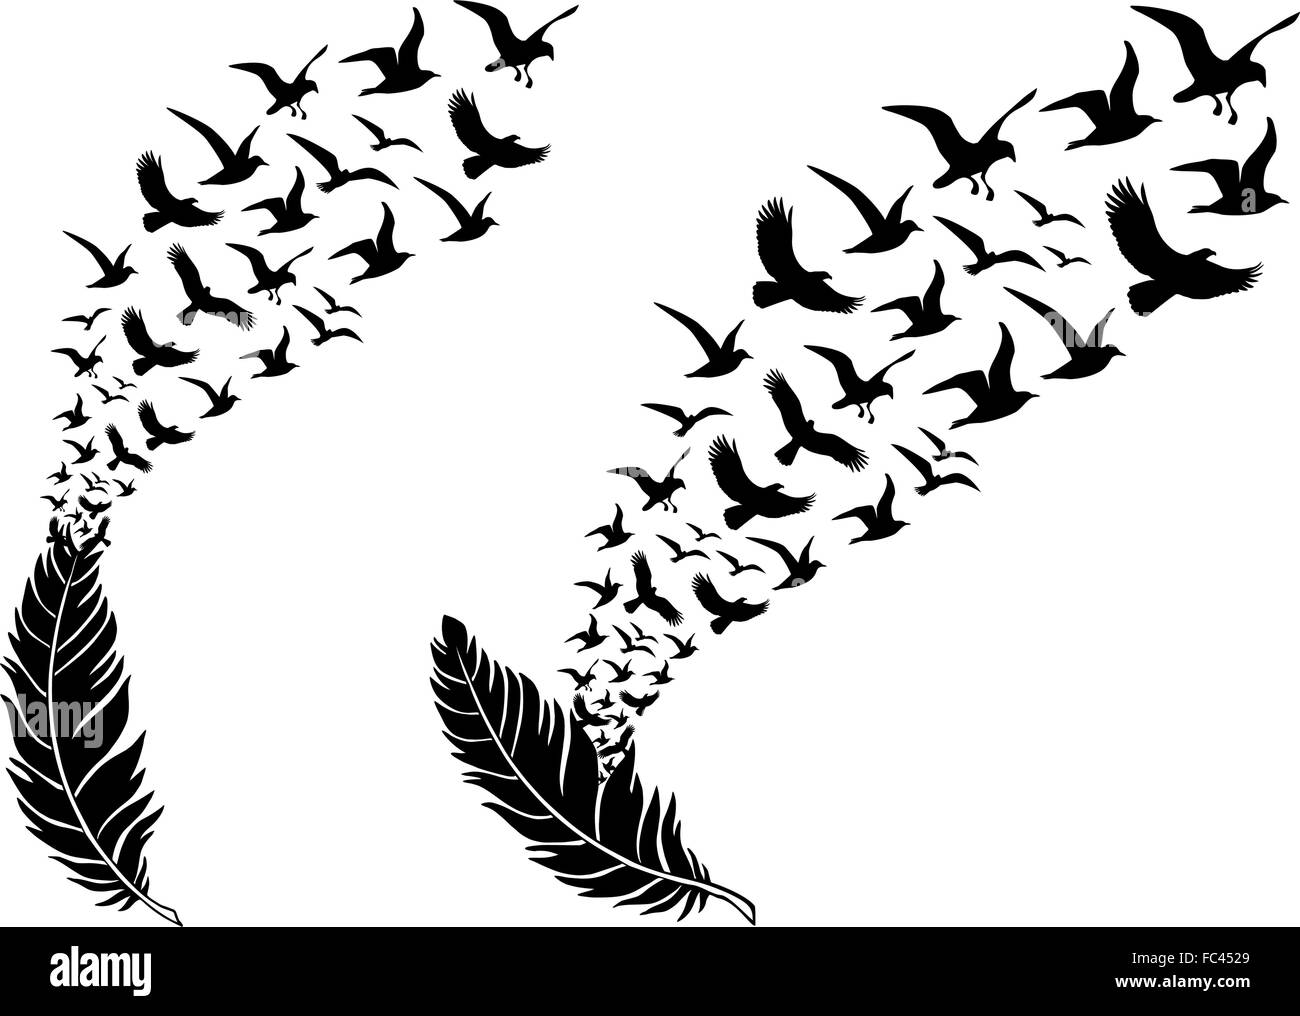 seagull tattoo stock photos u0026 seagull tattoo stock images alamy